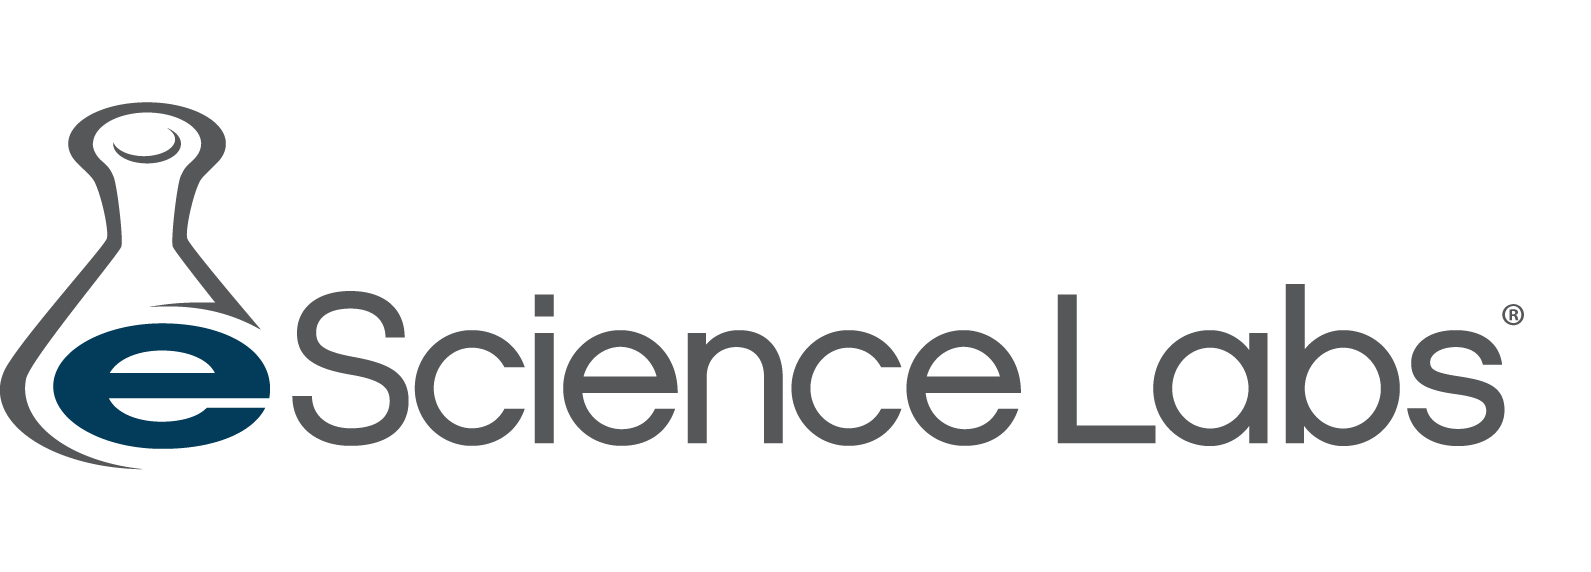 eScienceLabs logo with Erlenmeyer flask